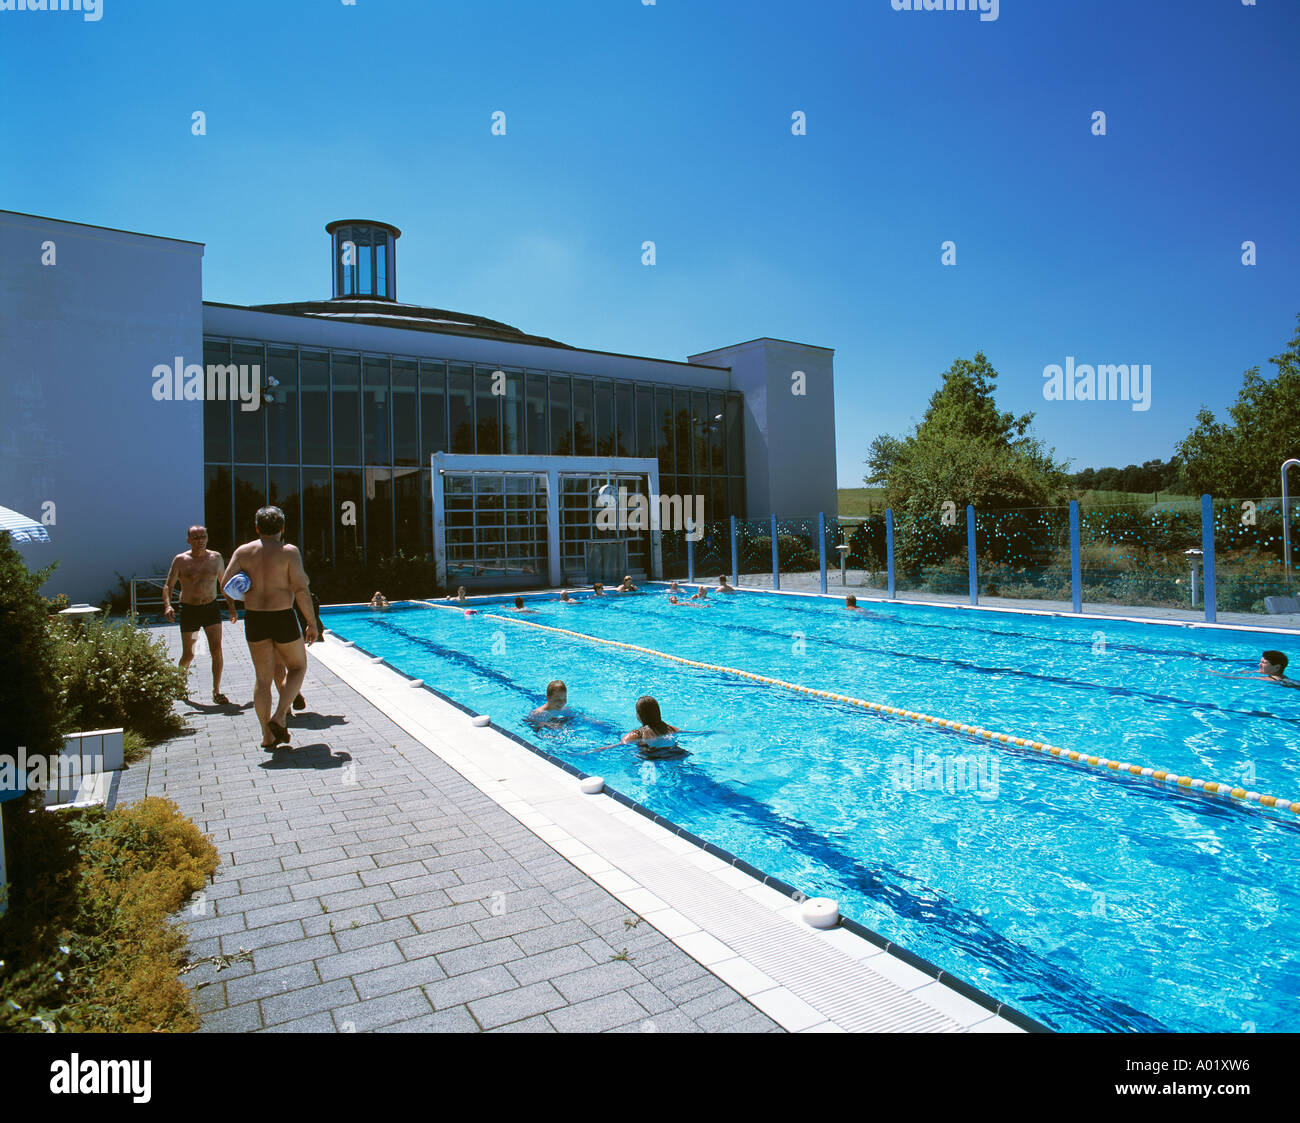 D Bad Abbach Danube Bavaria Kaiser Therme Thermal Baths Open